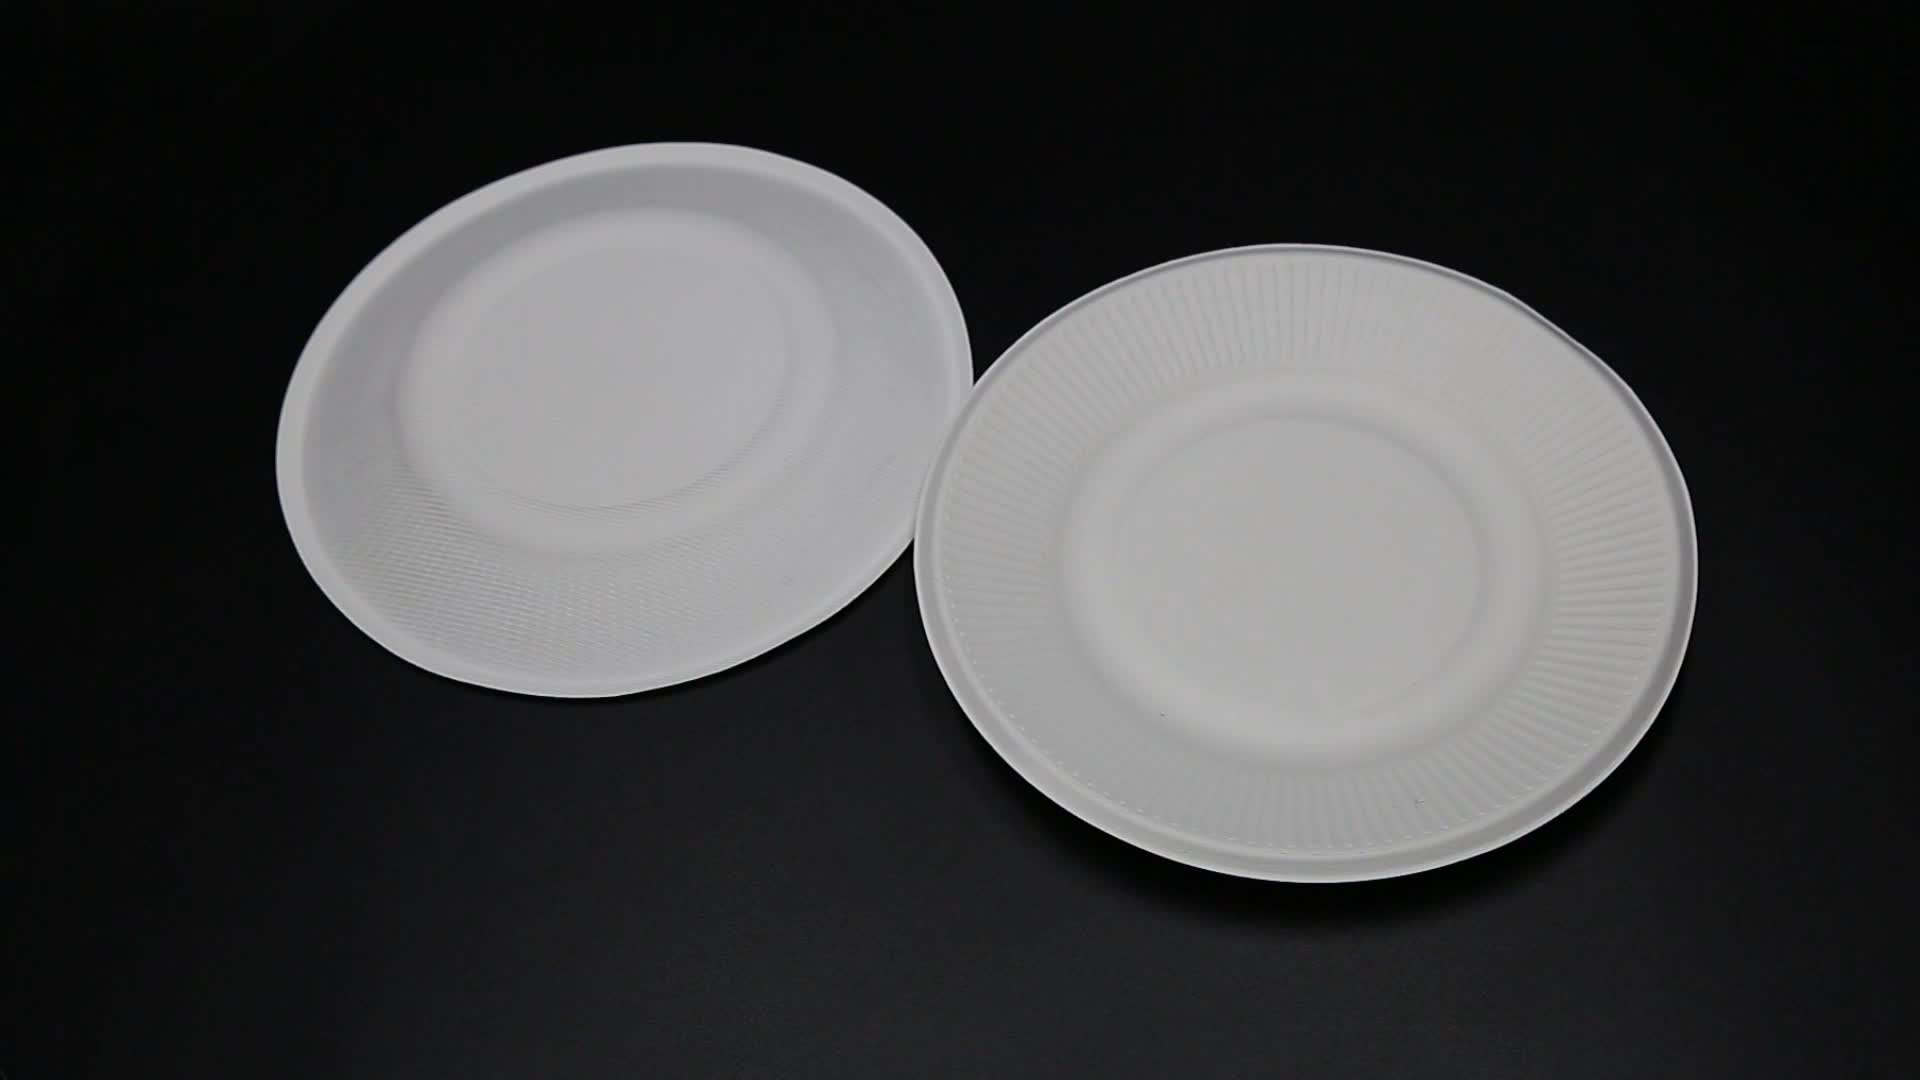 bagasse food trays Biodegradable dinnerware set, 8 inch sugarcane round plate